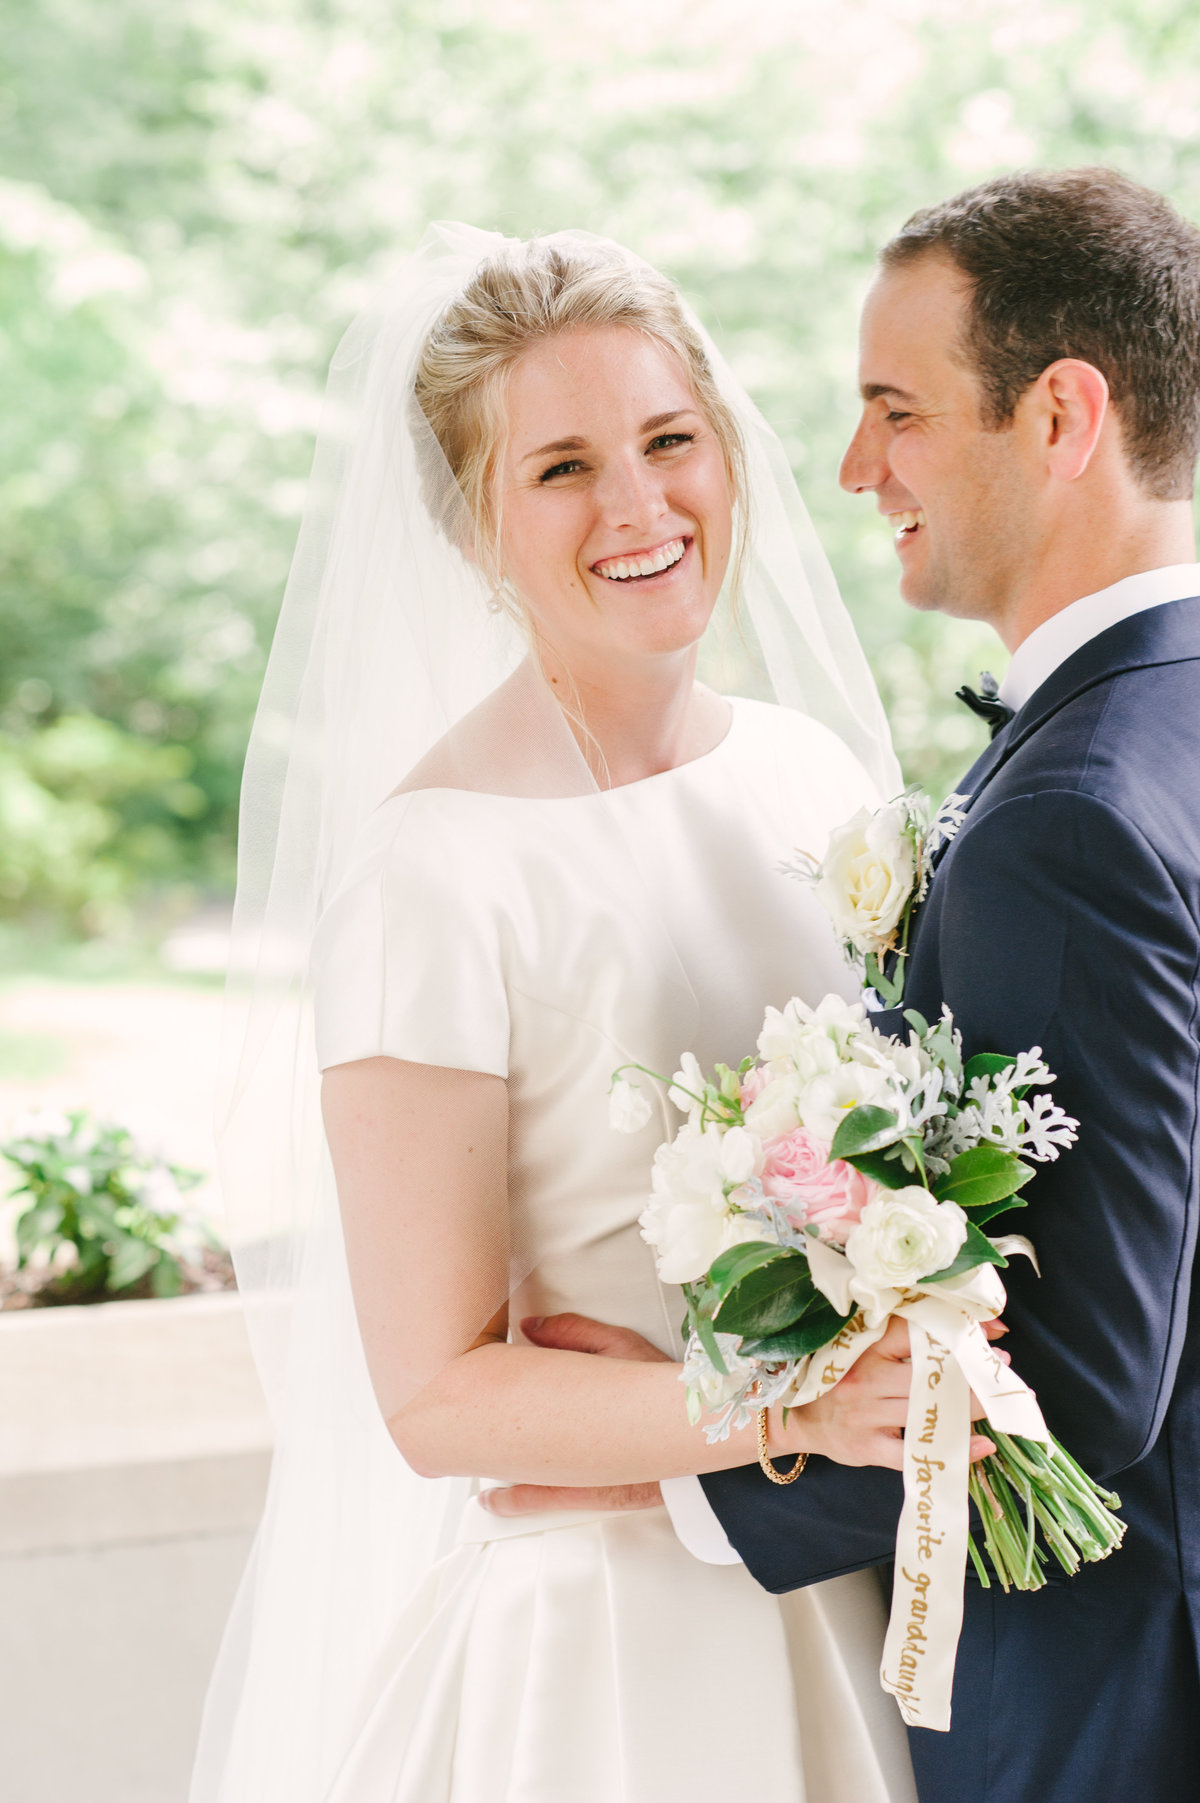 Joyful Wedding Portrait at Callanwolde Fine Arts Center